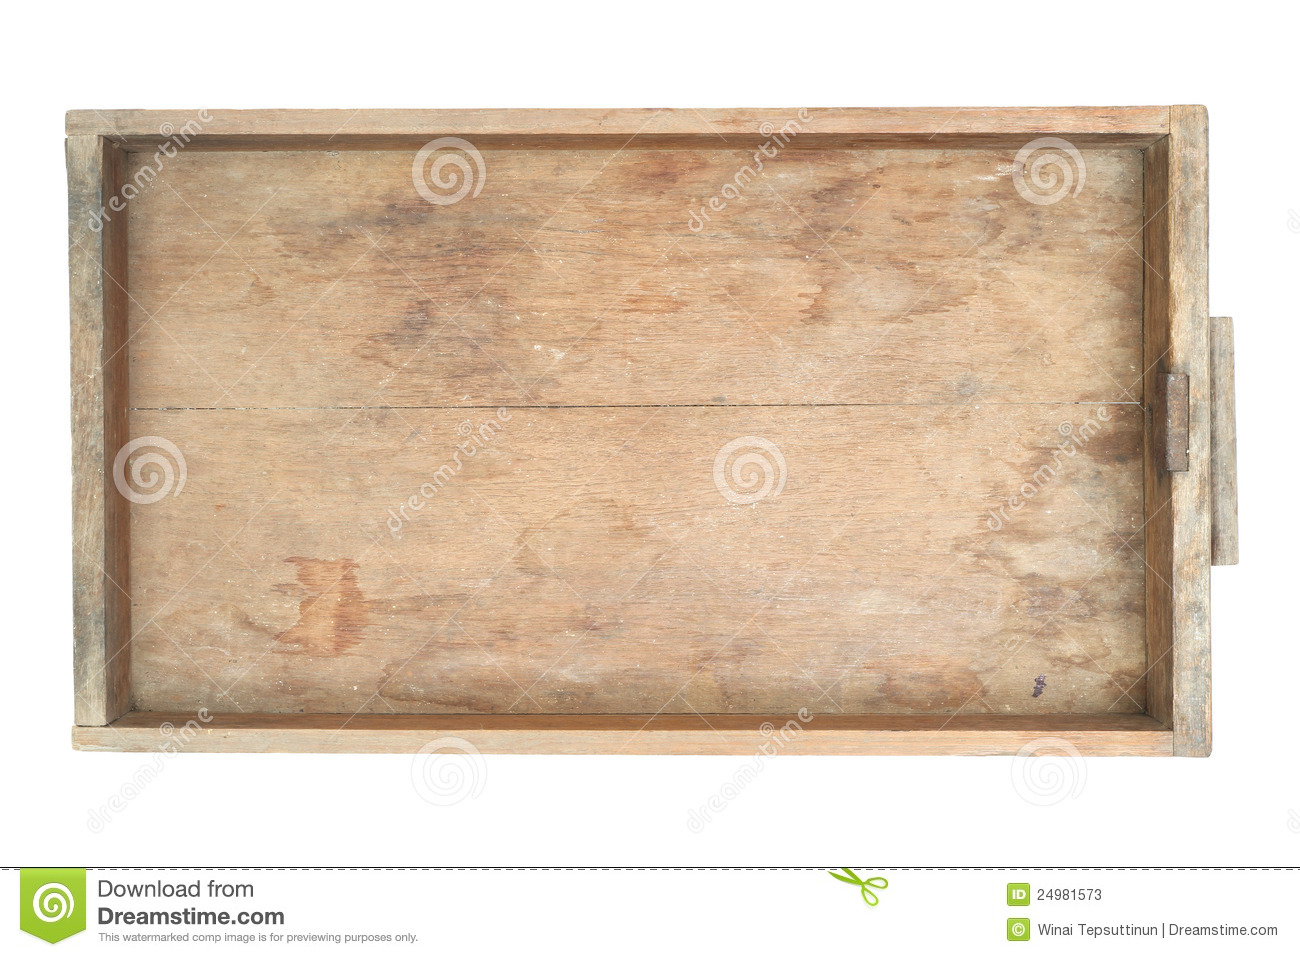 Wonderful image of Vintage wooden cabinet drawer isolated on white background. with #84A724 color and 1300x957 pixels